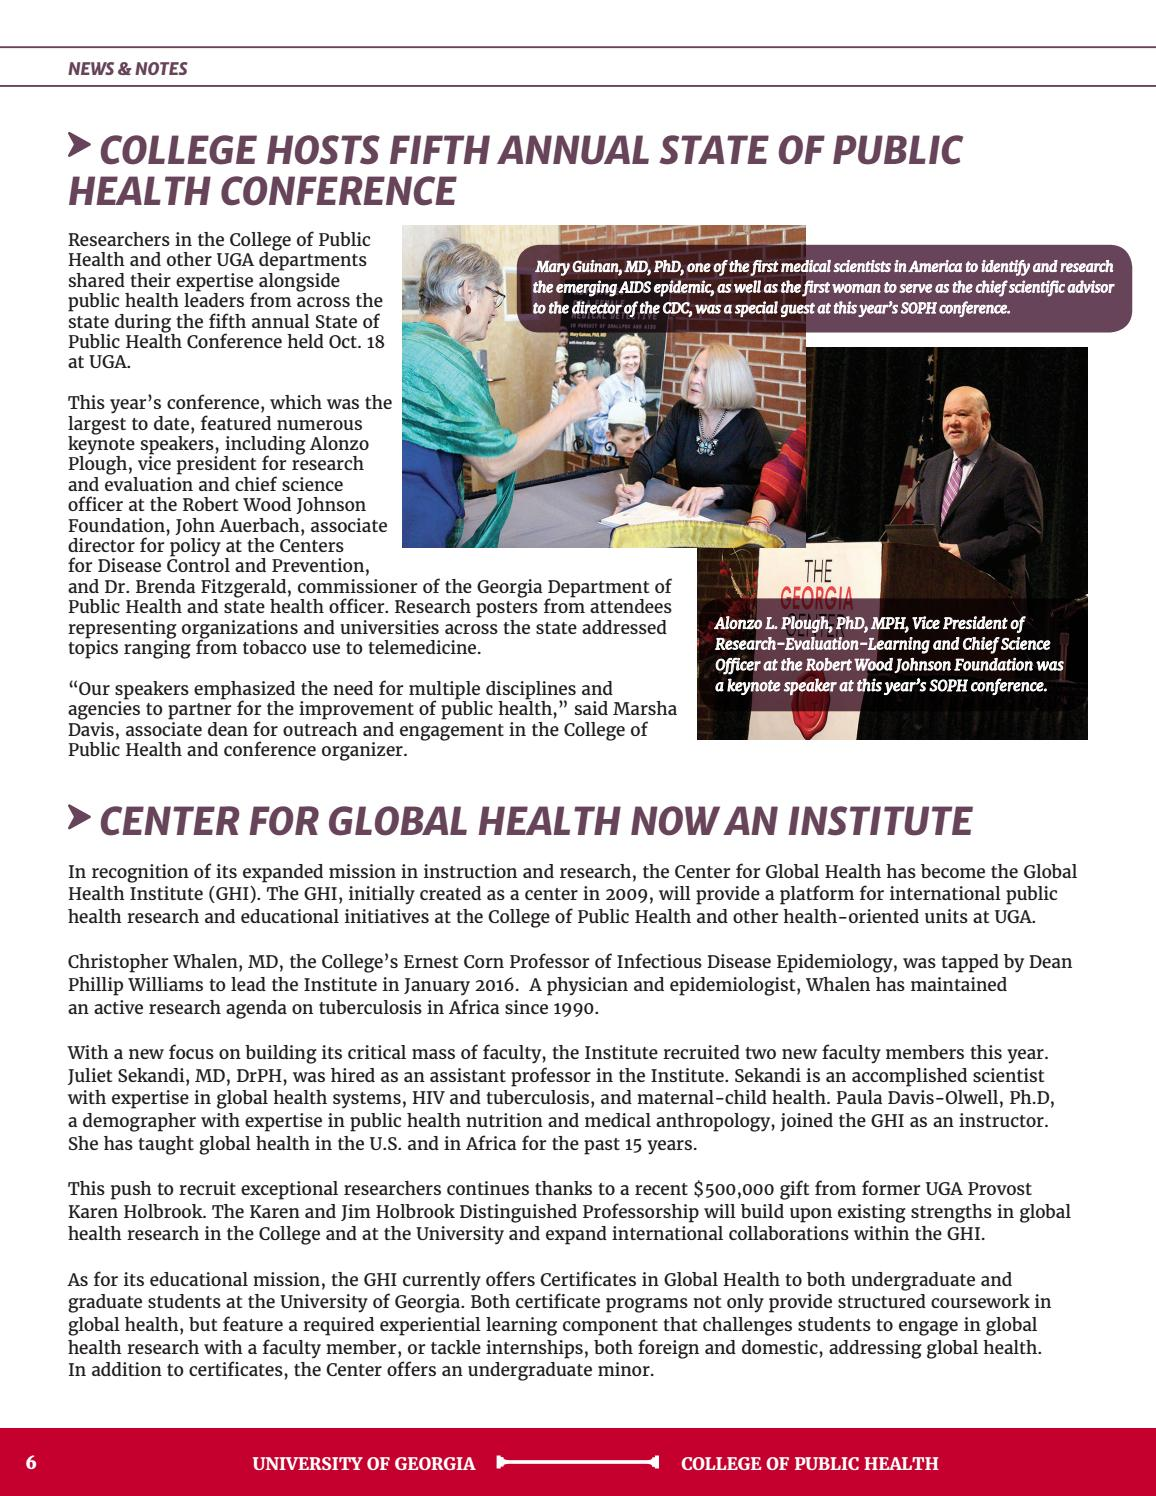 Uga Public Health Magazine 2017 Issue By University Of Georgia